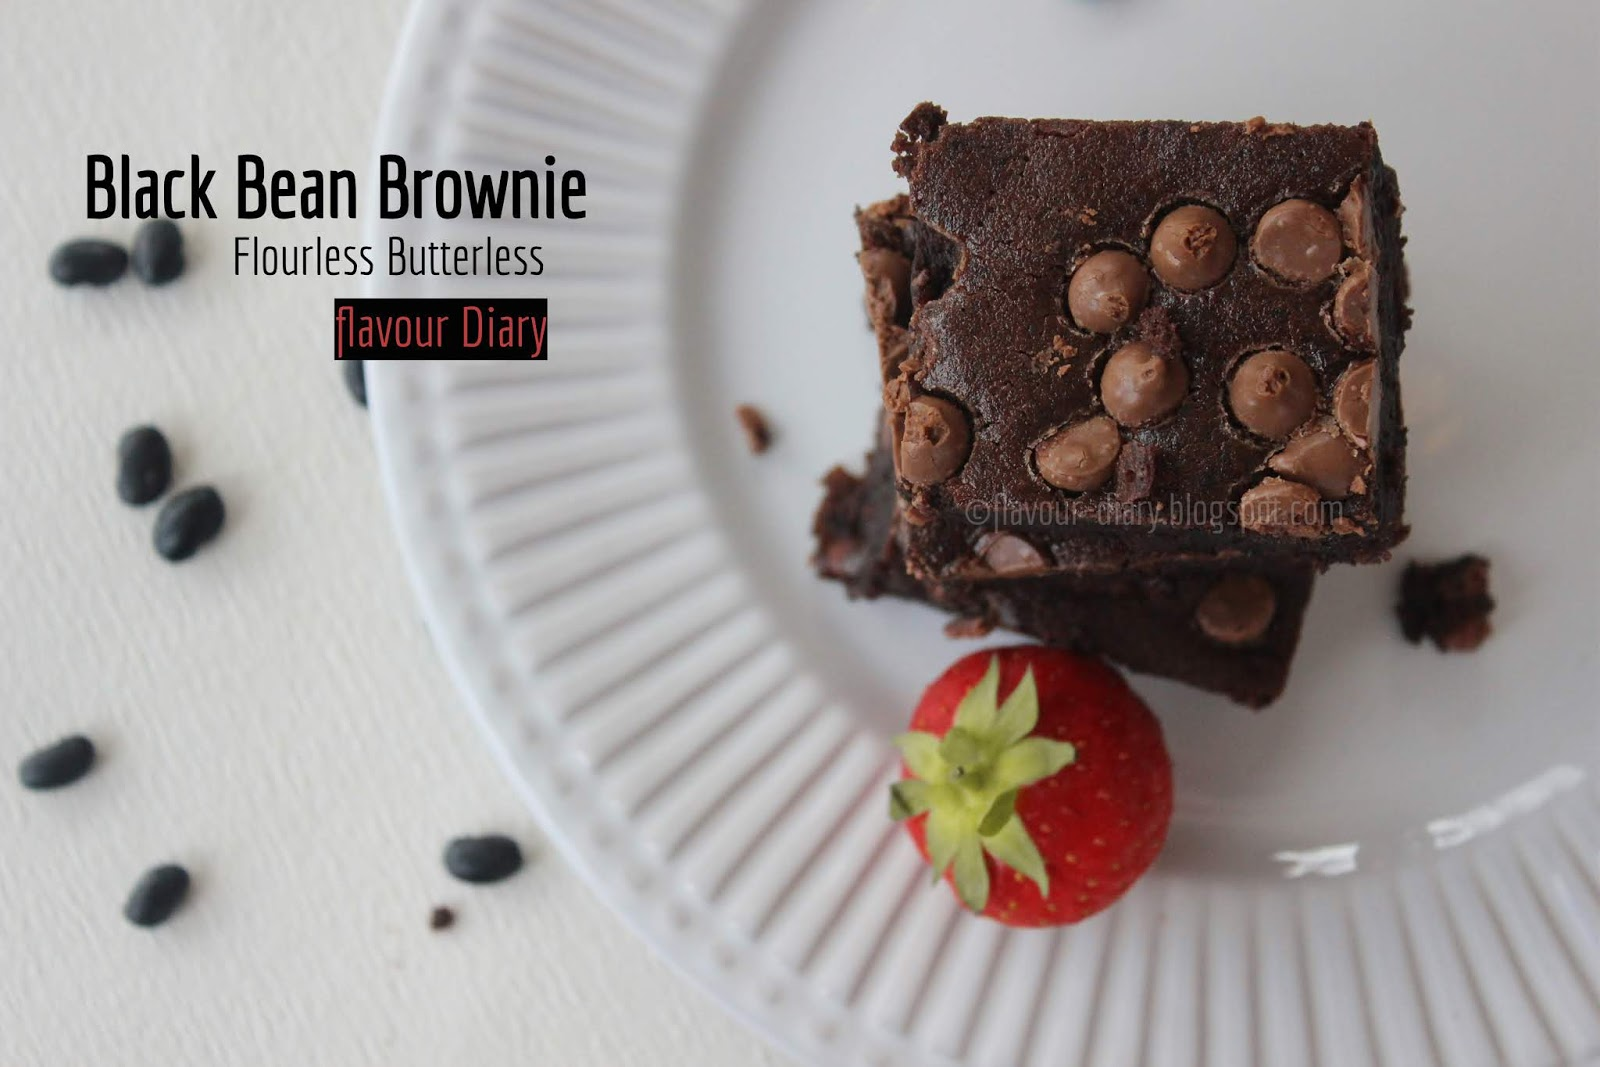 Black Bean Brownie healthy baking recipe